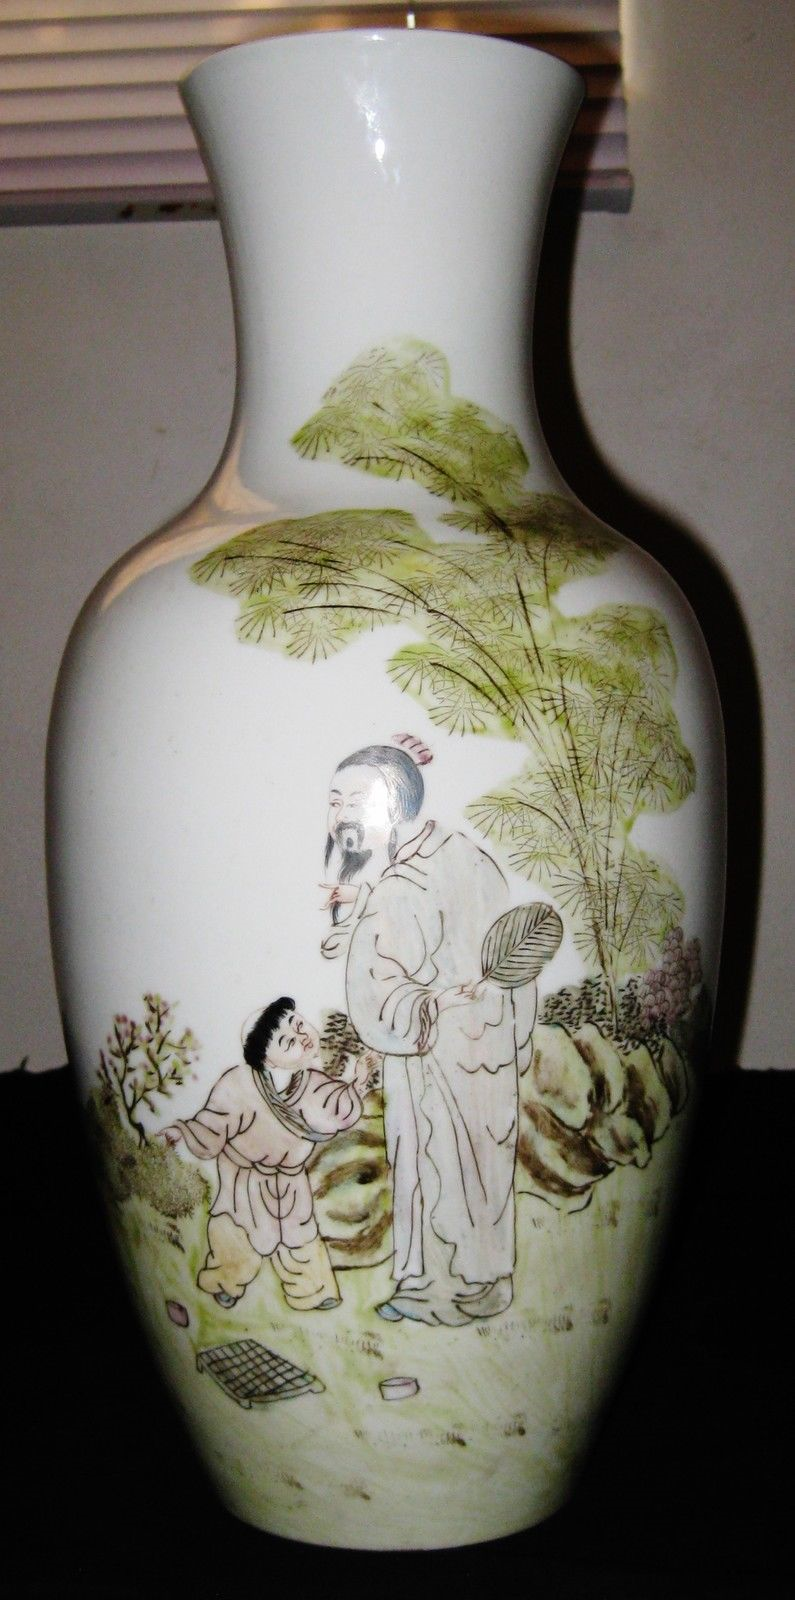 CHINESE YU,WENXIANG ARTIST WORK ON PORCELAIN FAMILLE ROSE VASE,CIRCA 1910-1993.